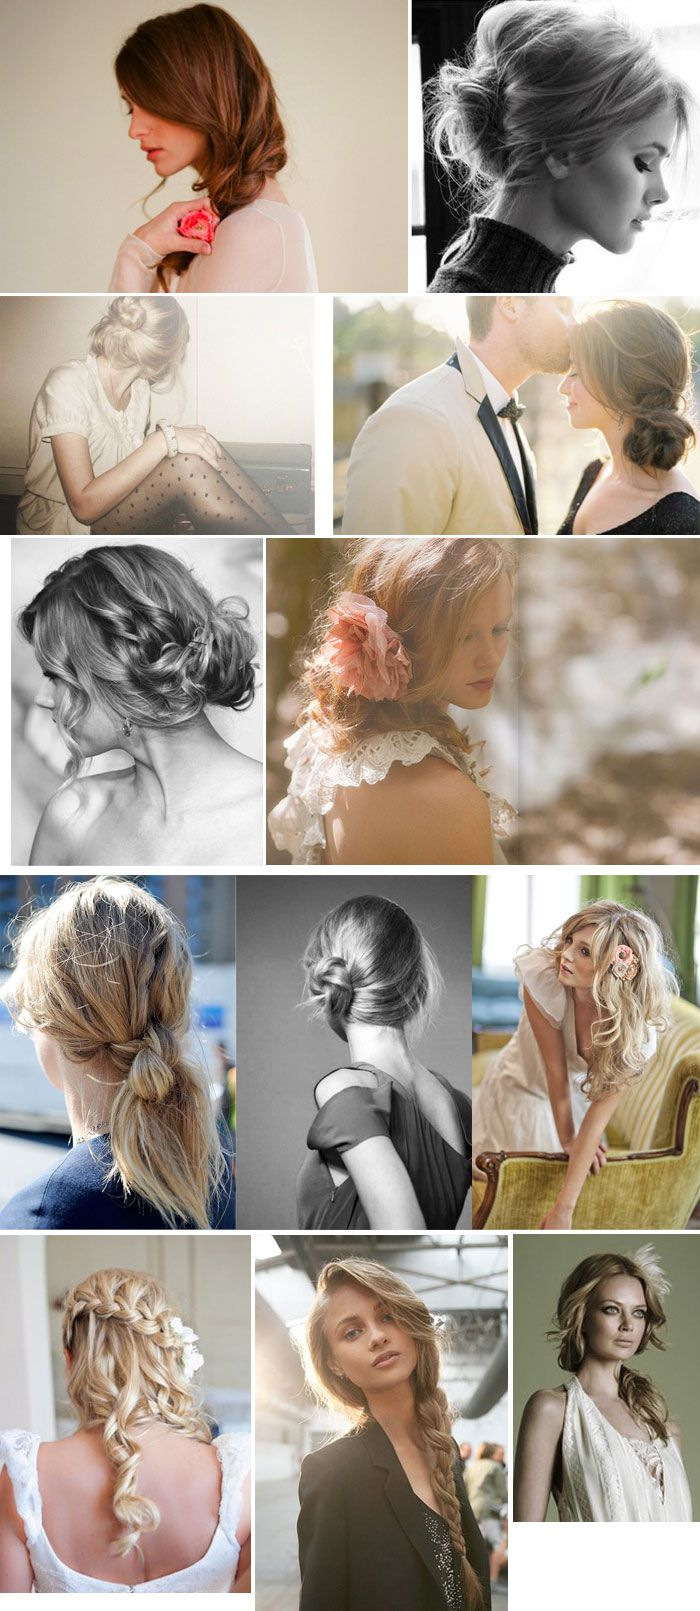 Easy, effortless messy chic hairstyles for the big day. Really digging the loose side braids.